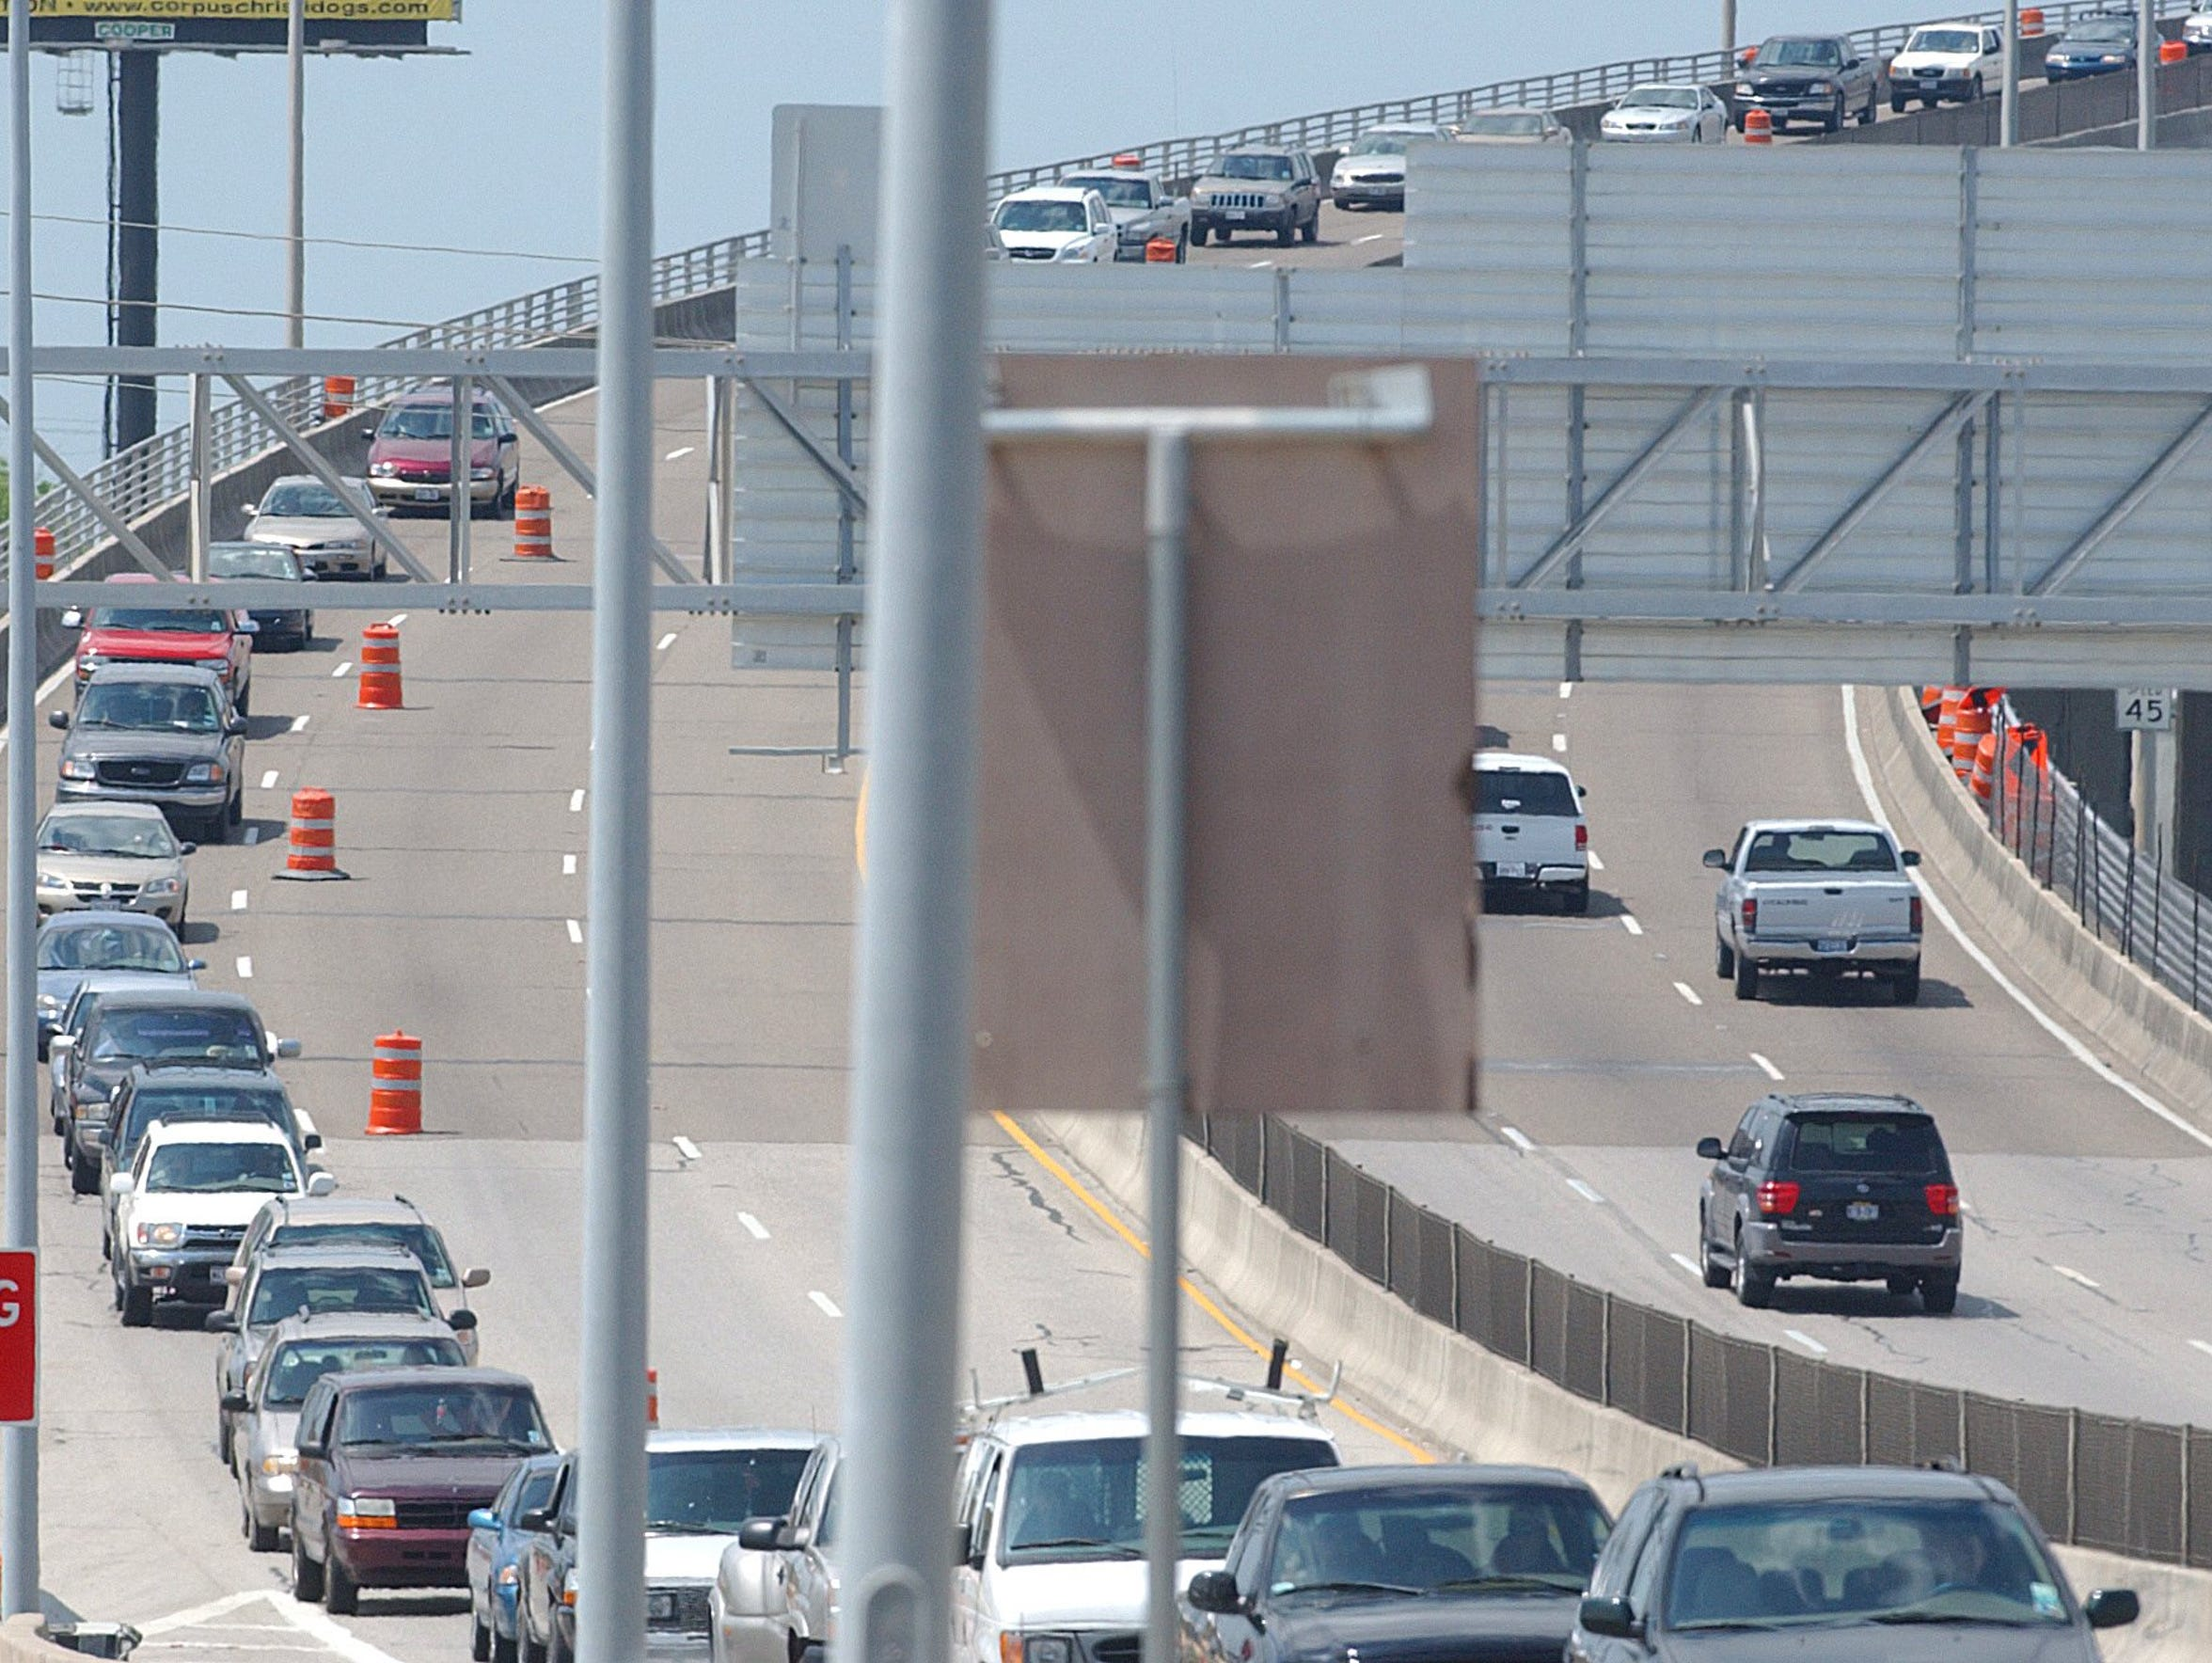 State transportation officials say the Harbor Bridge, built in the 1950s, needs to be replaced for safety reasons. It often gets clogged during peak travel times or when a crash occurs.